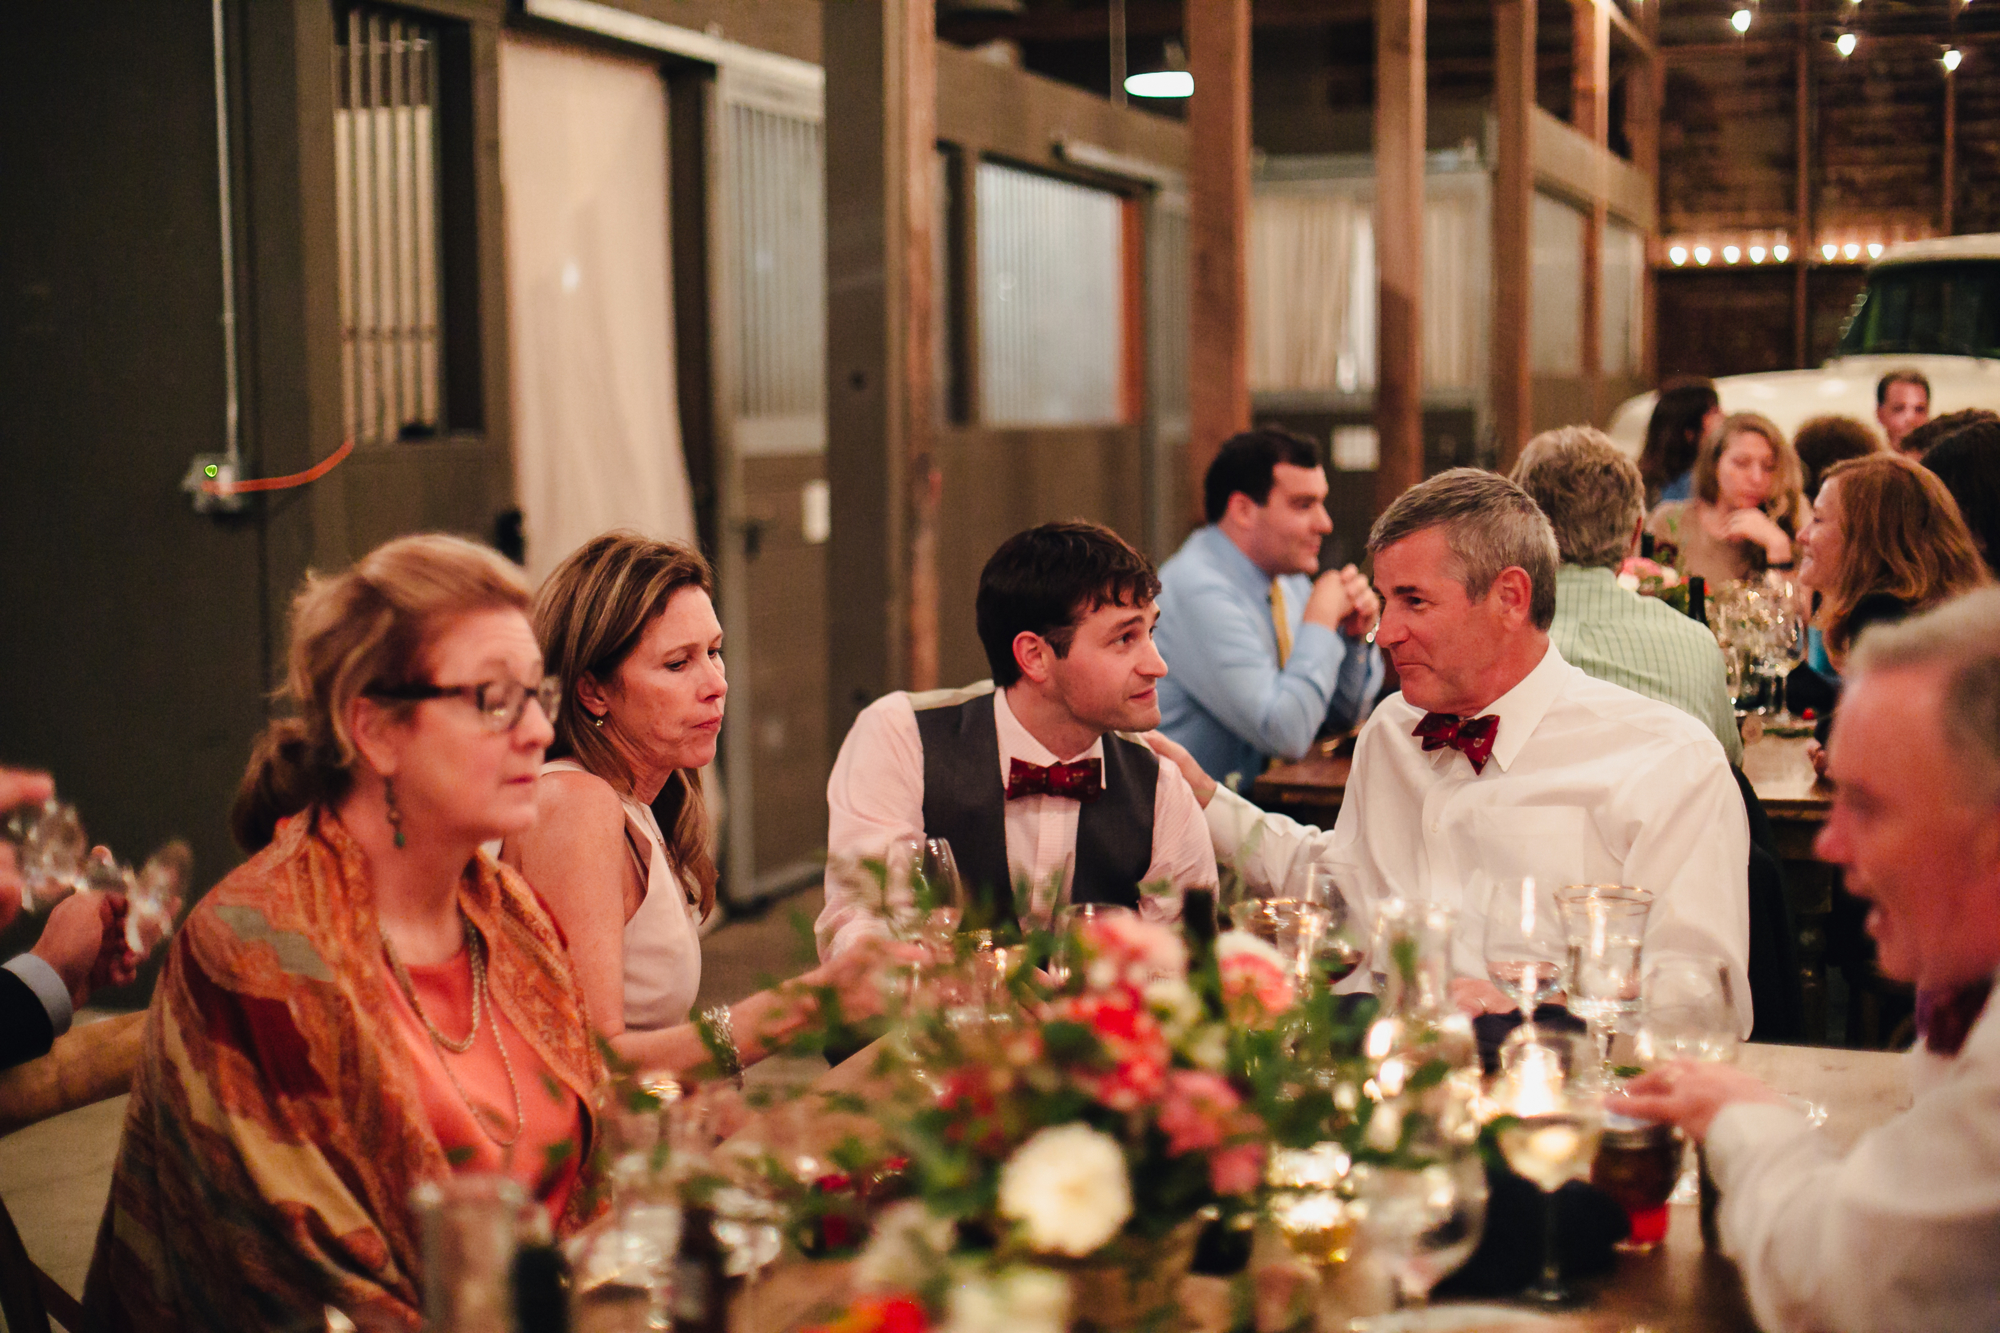 A sweet fall wedding at Bloomfield Farms in Petaluma, California.